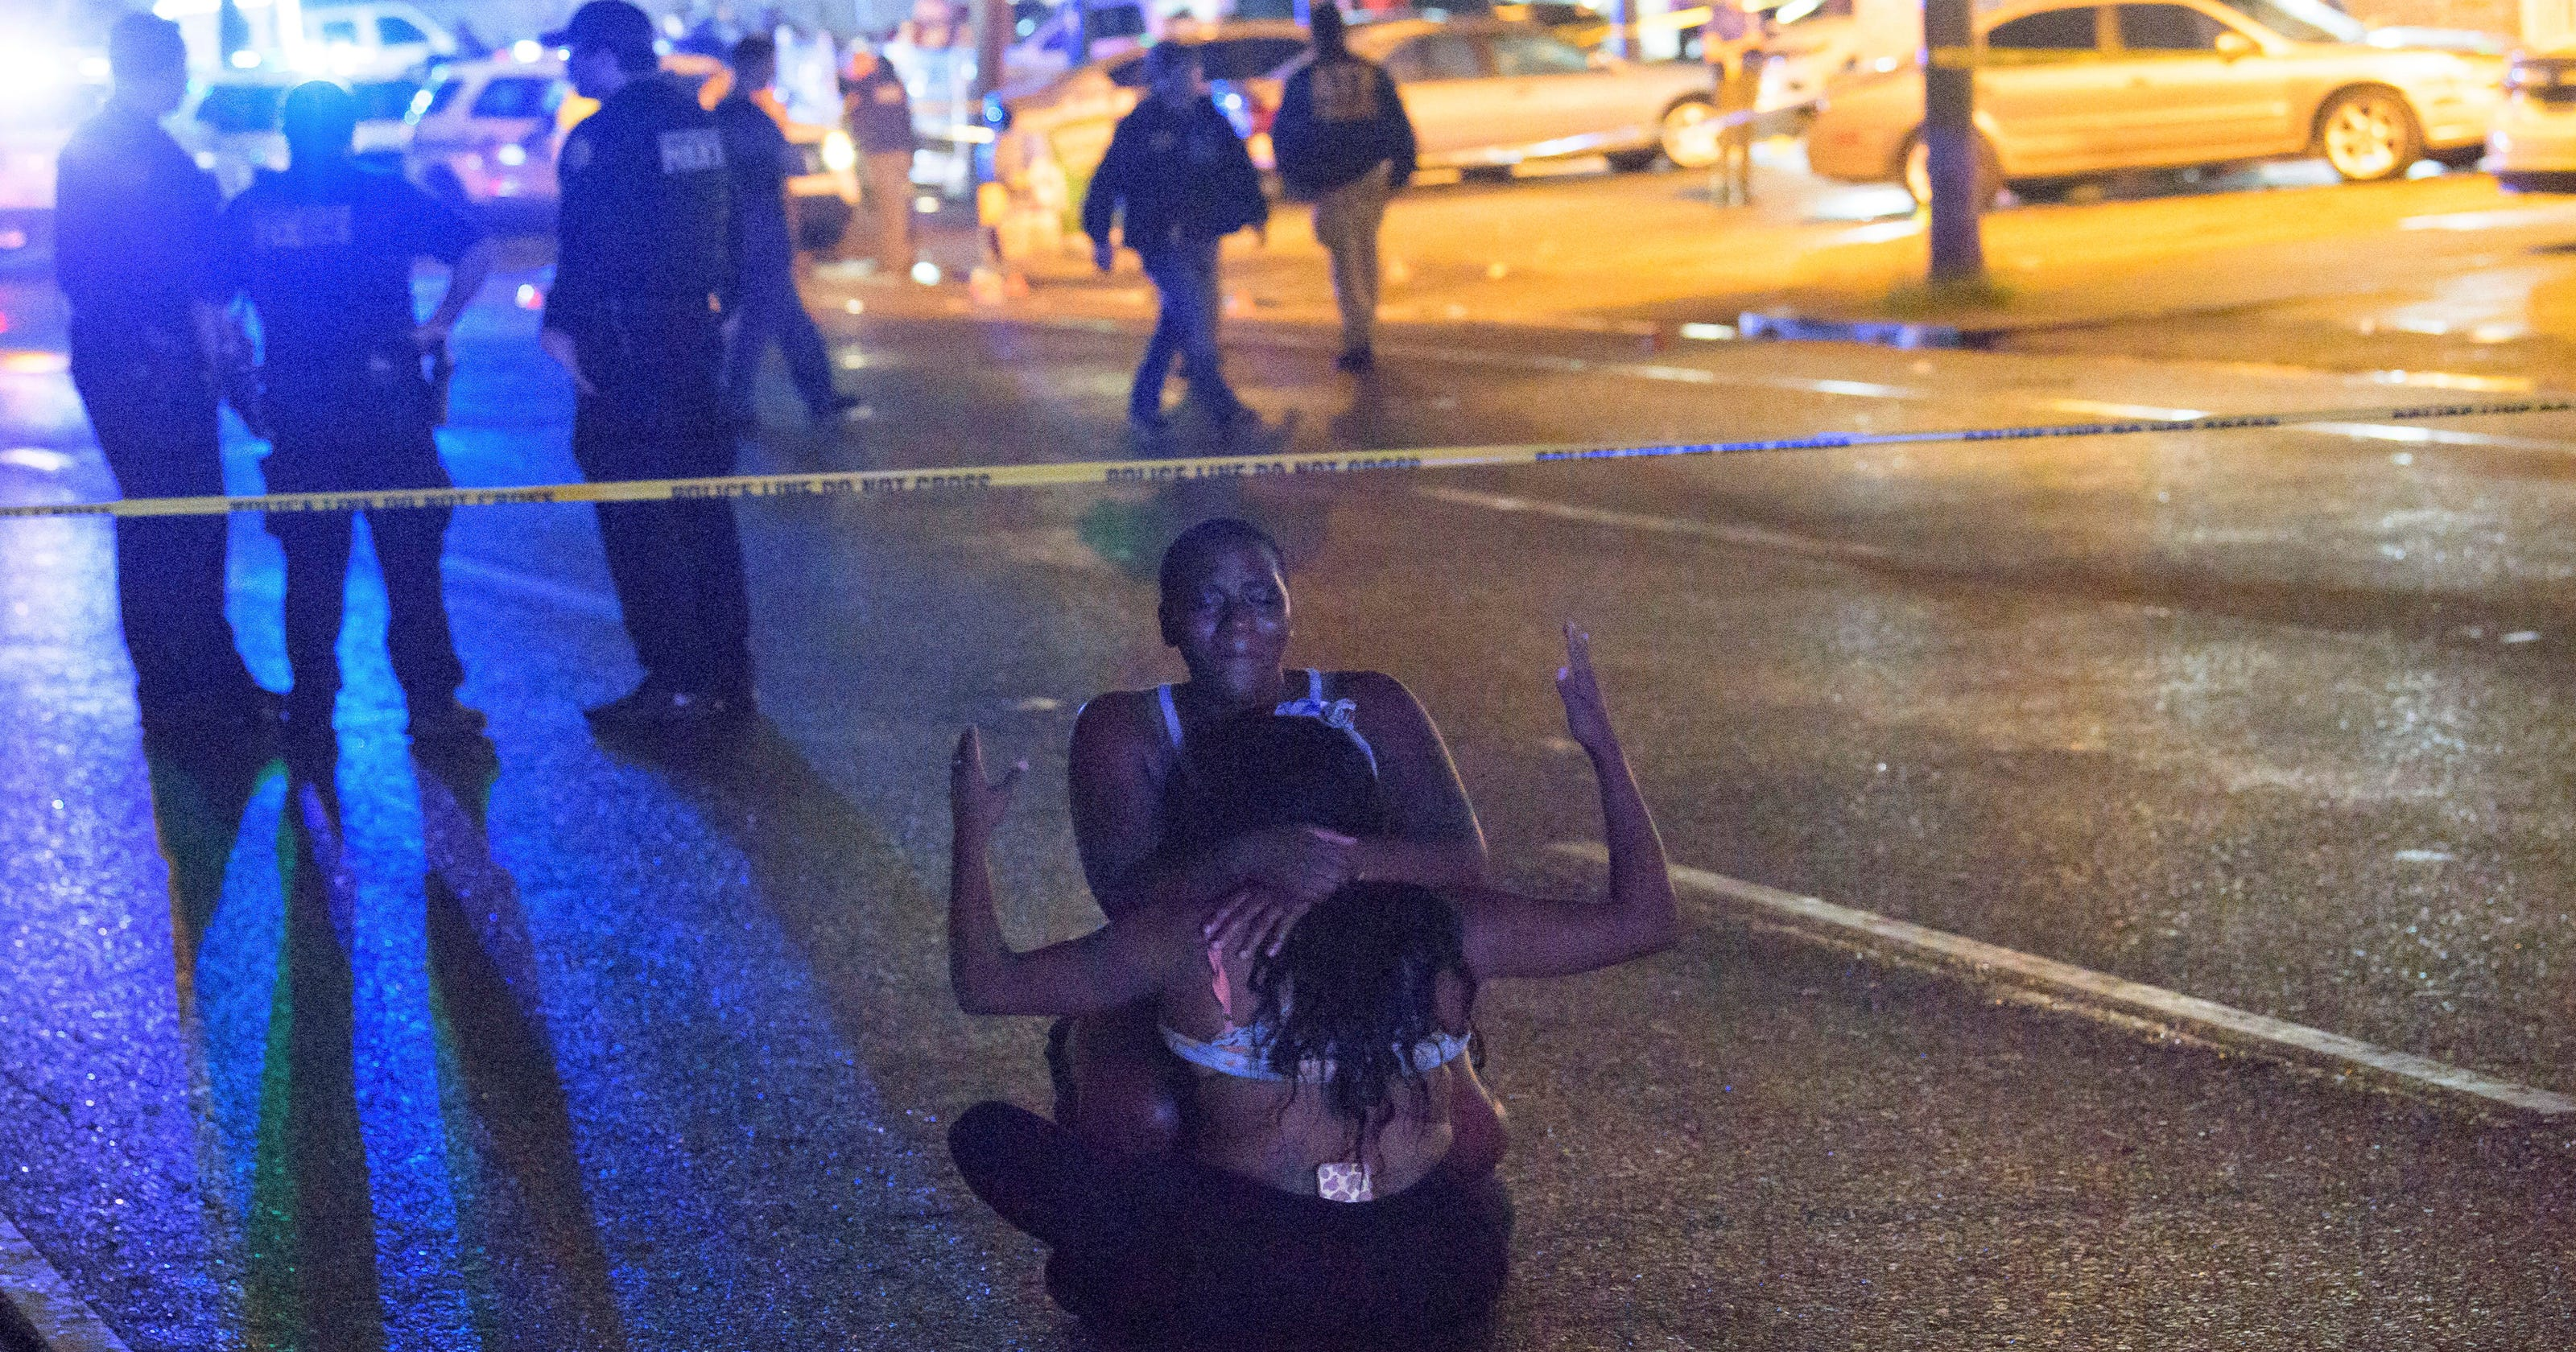 New Orleans shooting: 3 dead, 7 injured according to reports